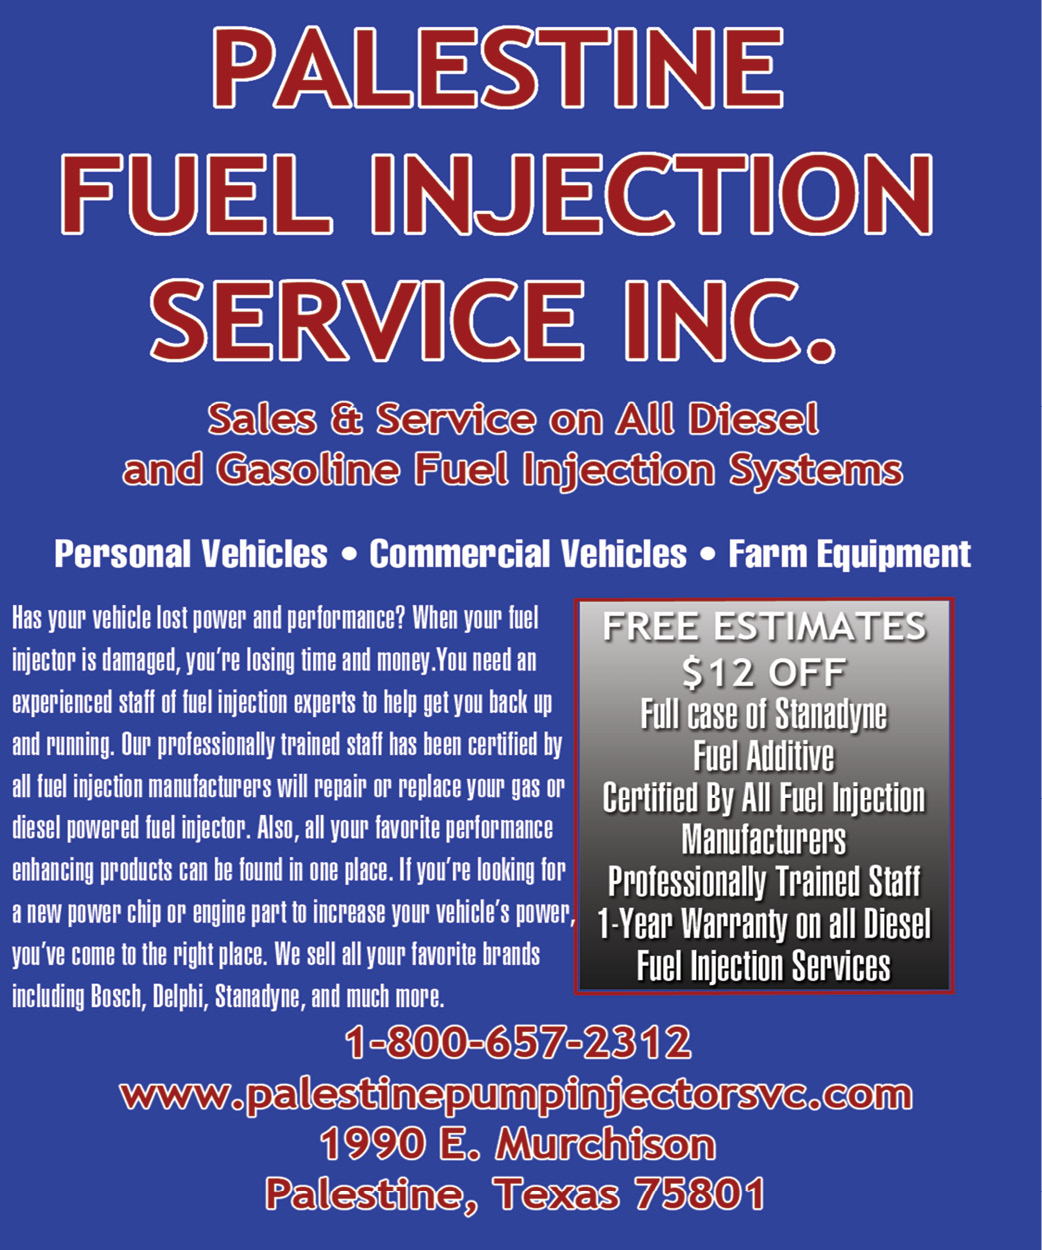 Palestine-Fuel-Injection-web-ad.jpg